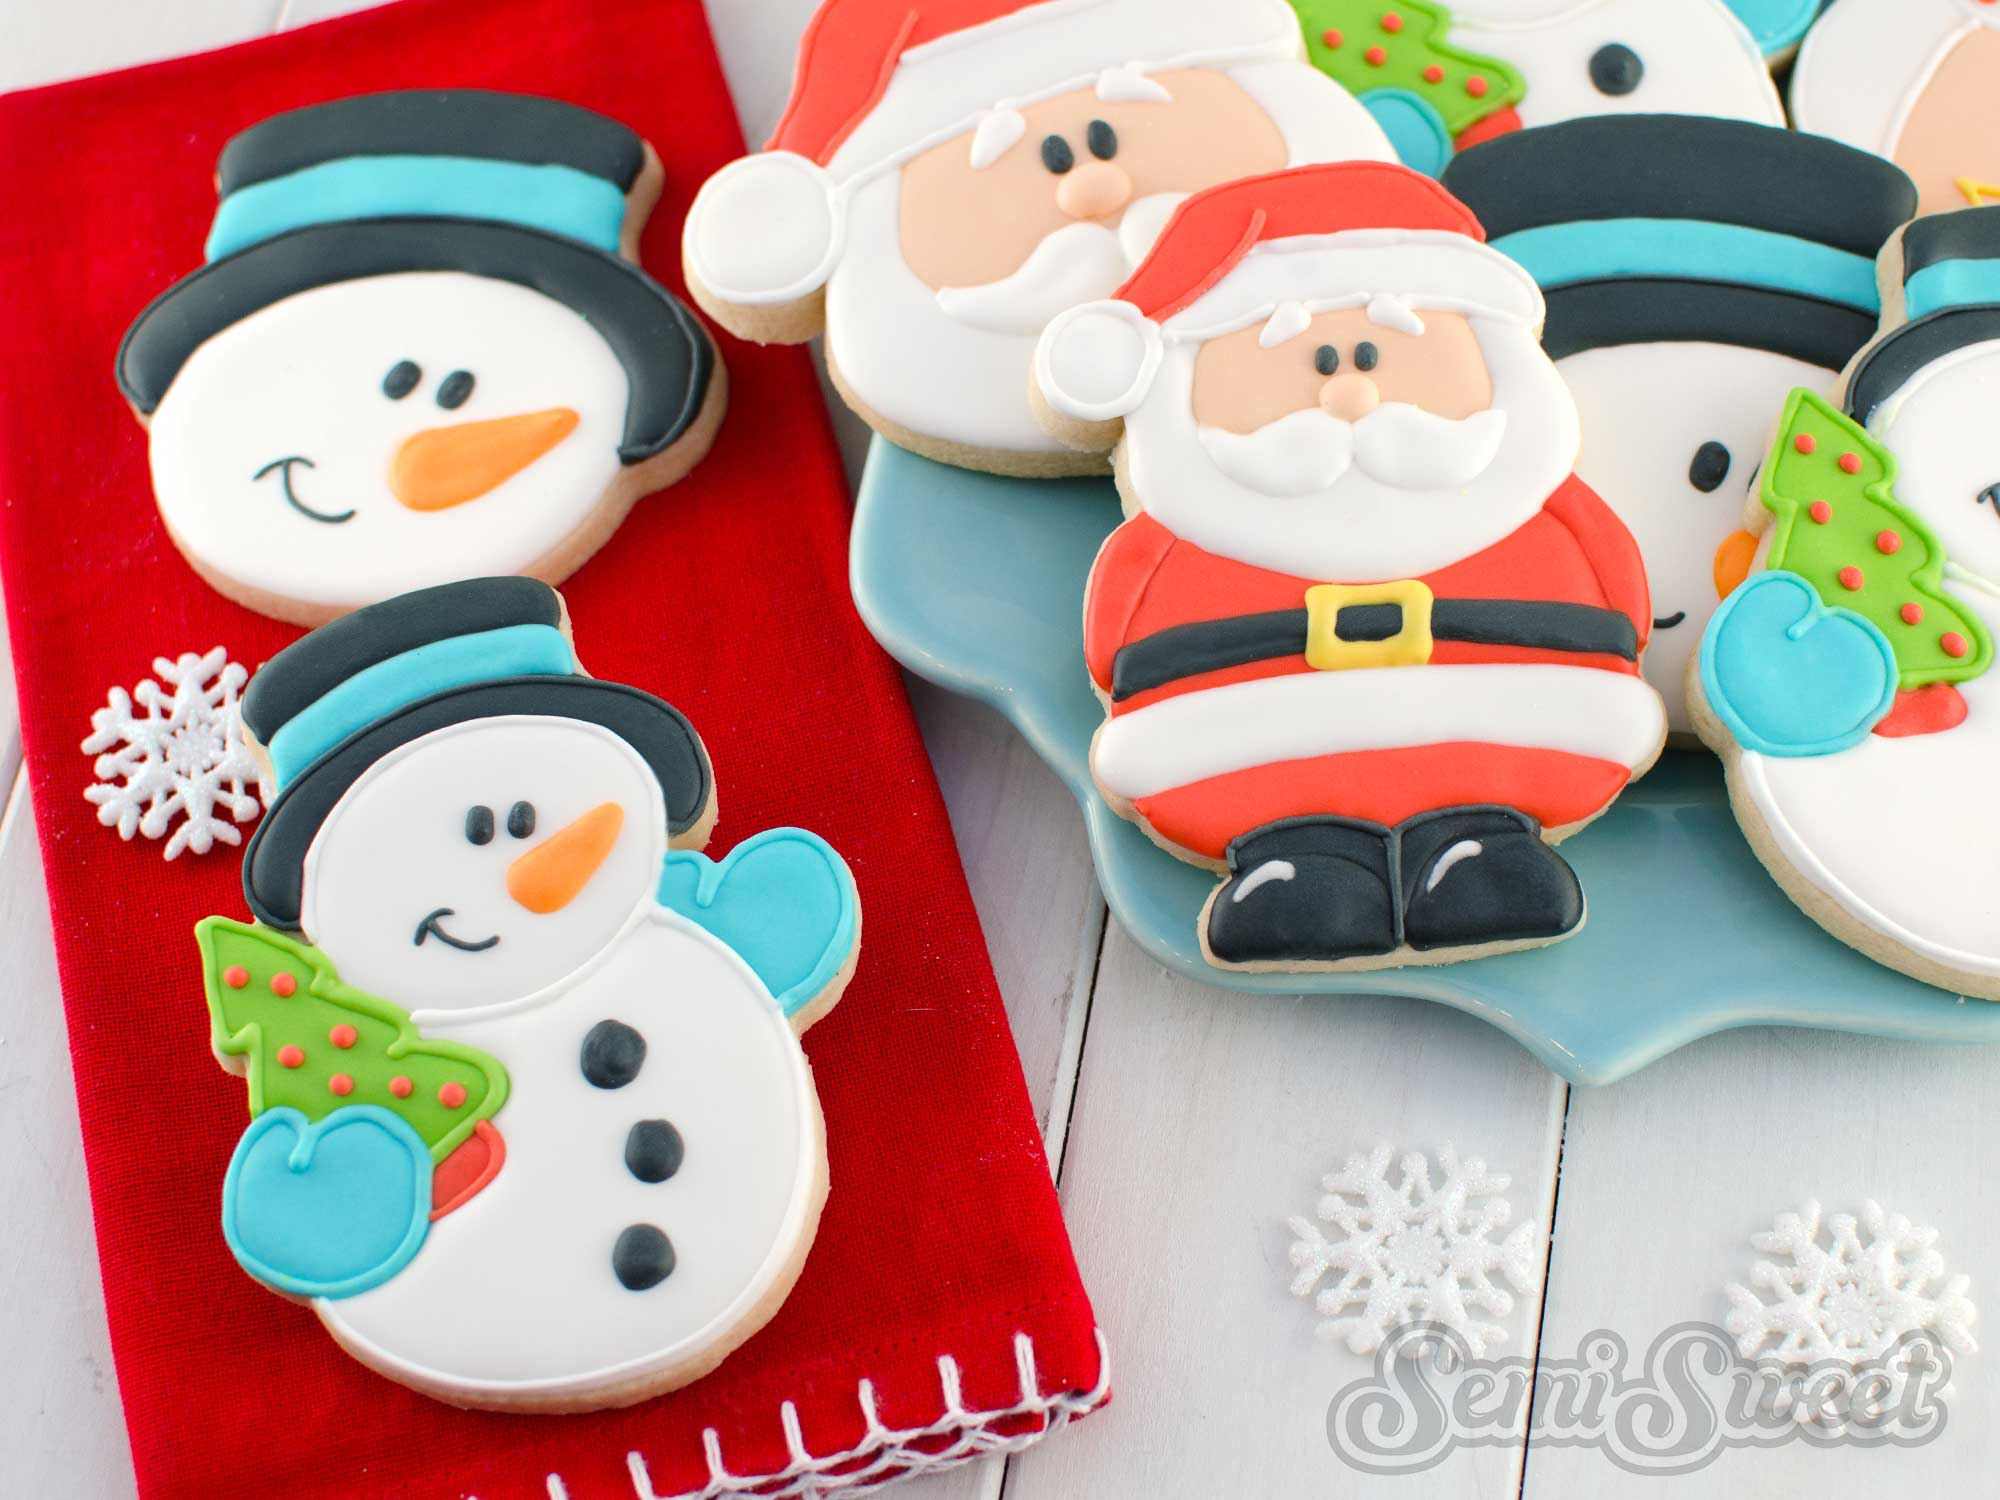 How to Make Snowman Cookies